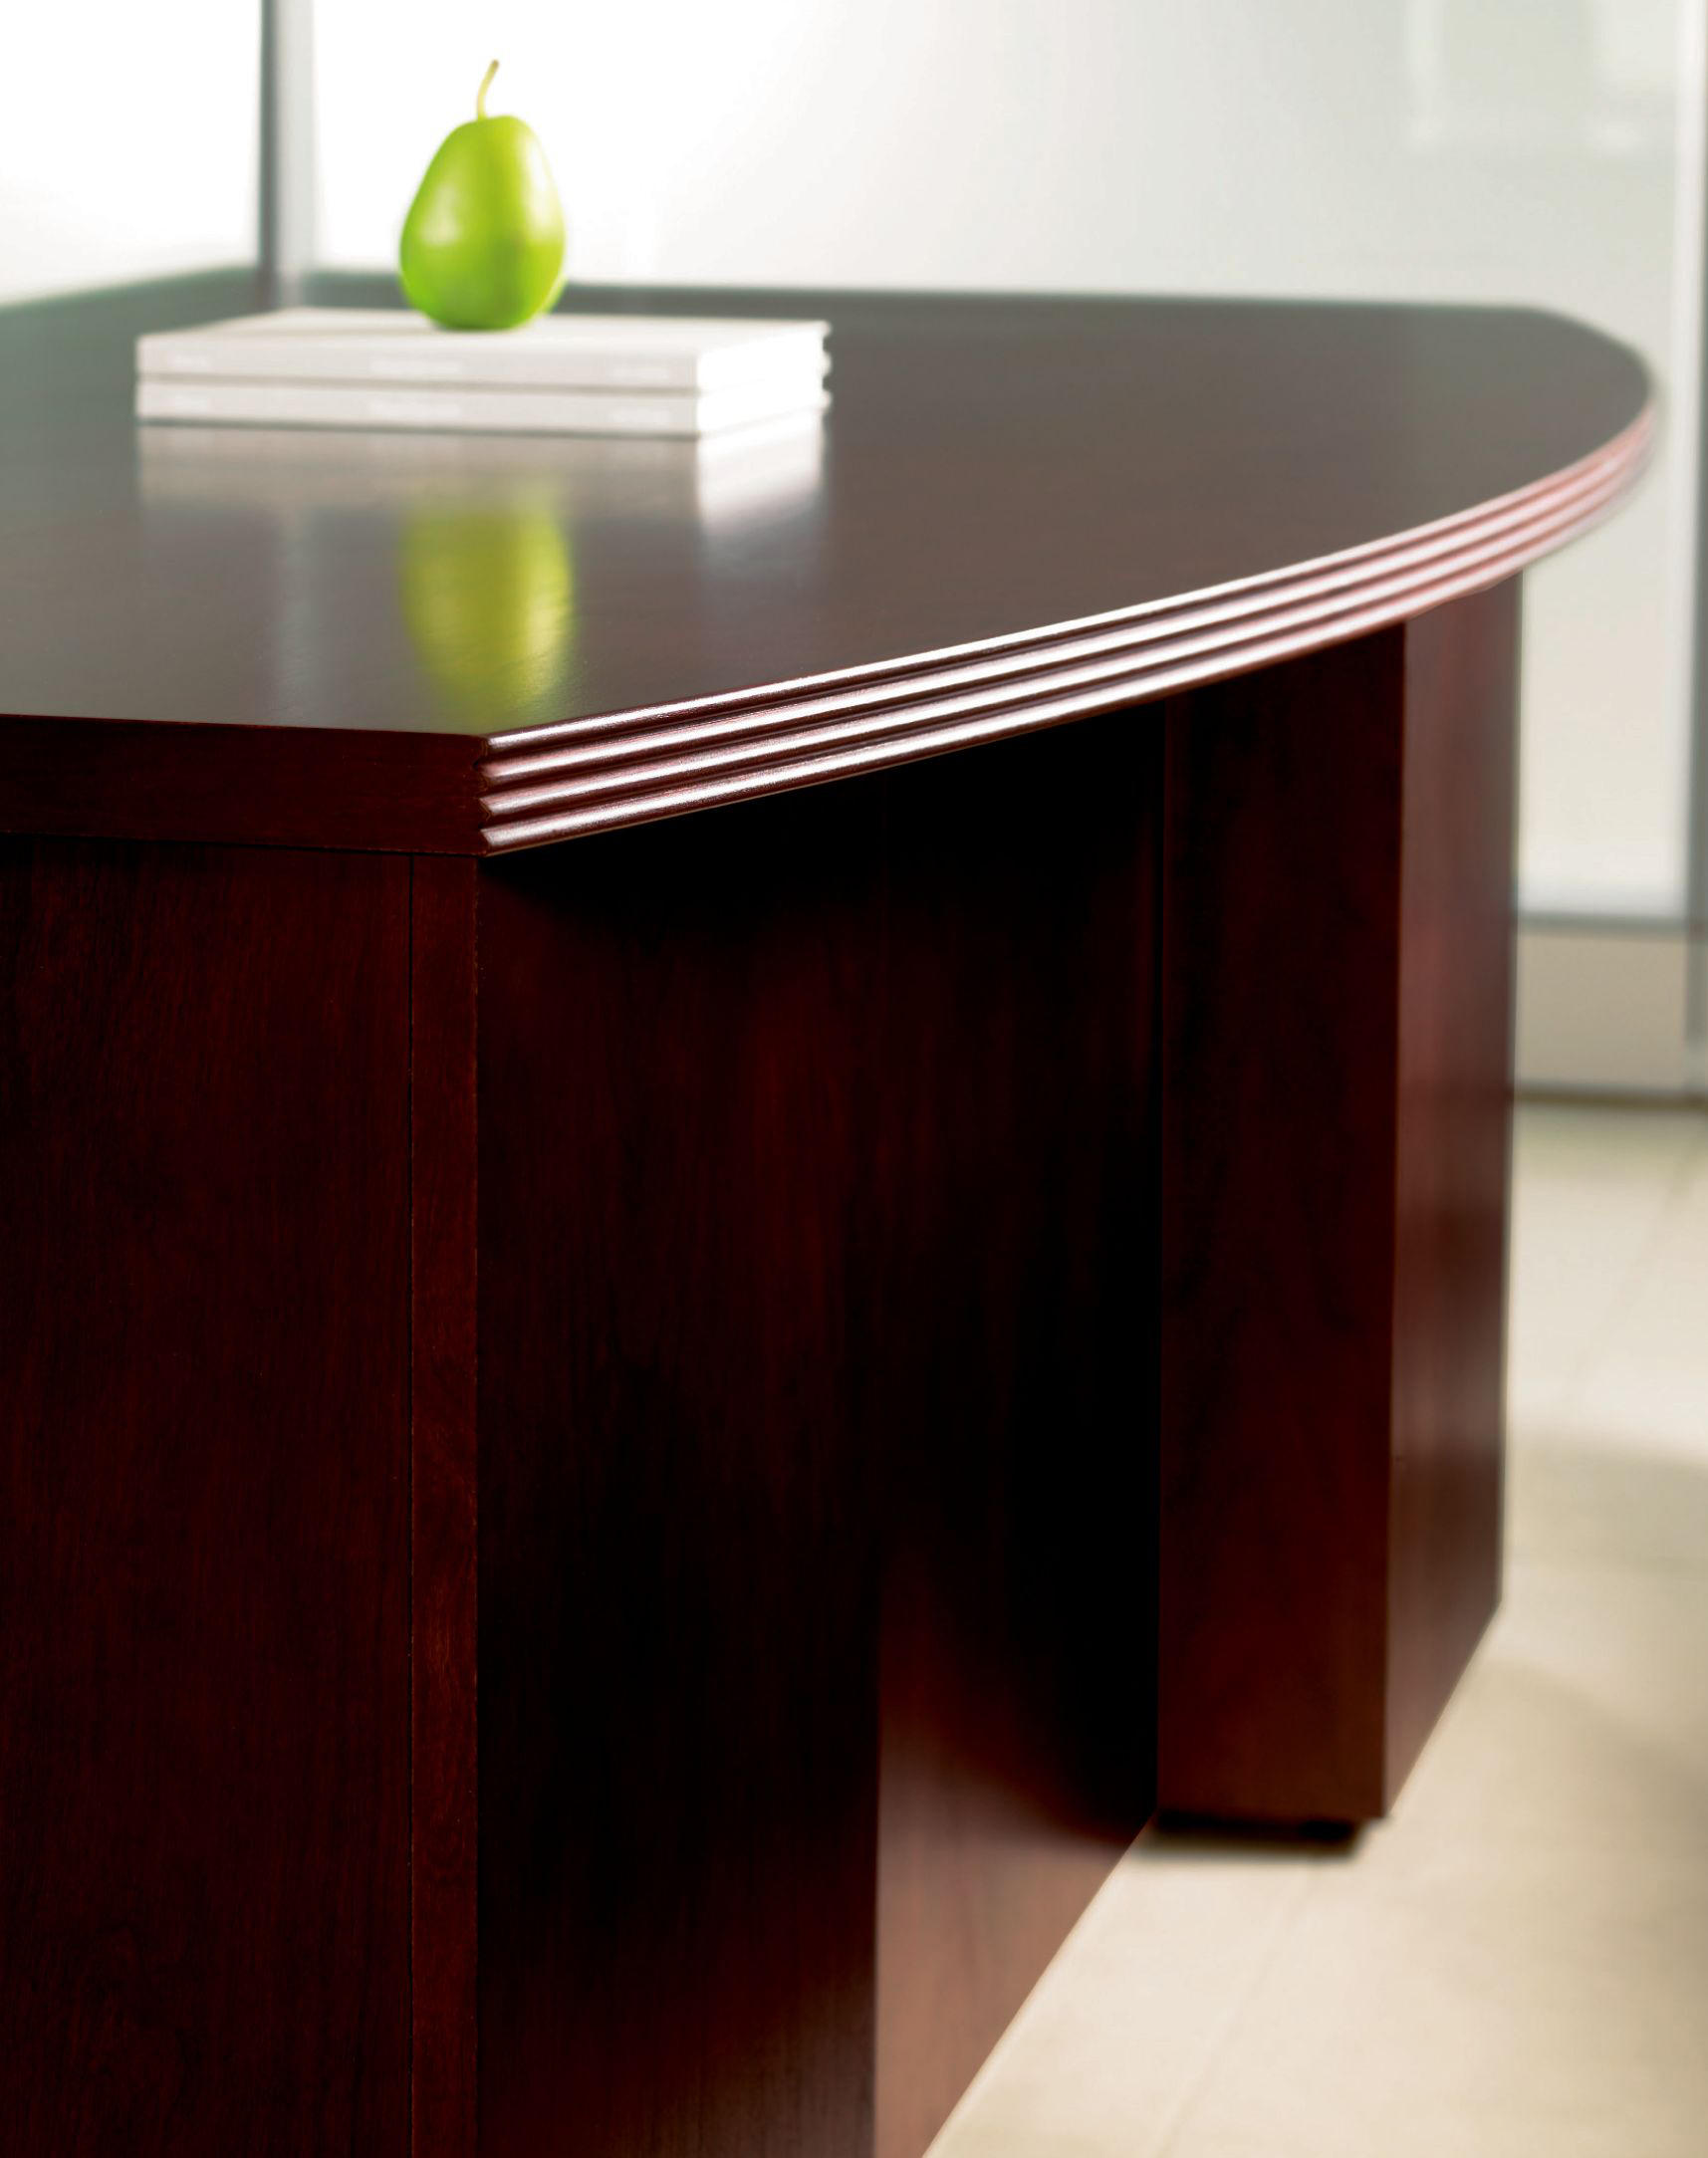 Expansion wood executive desks from teknion architonic for Furniture 08054